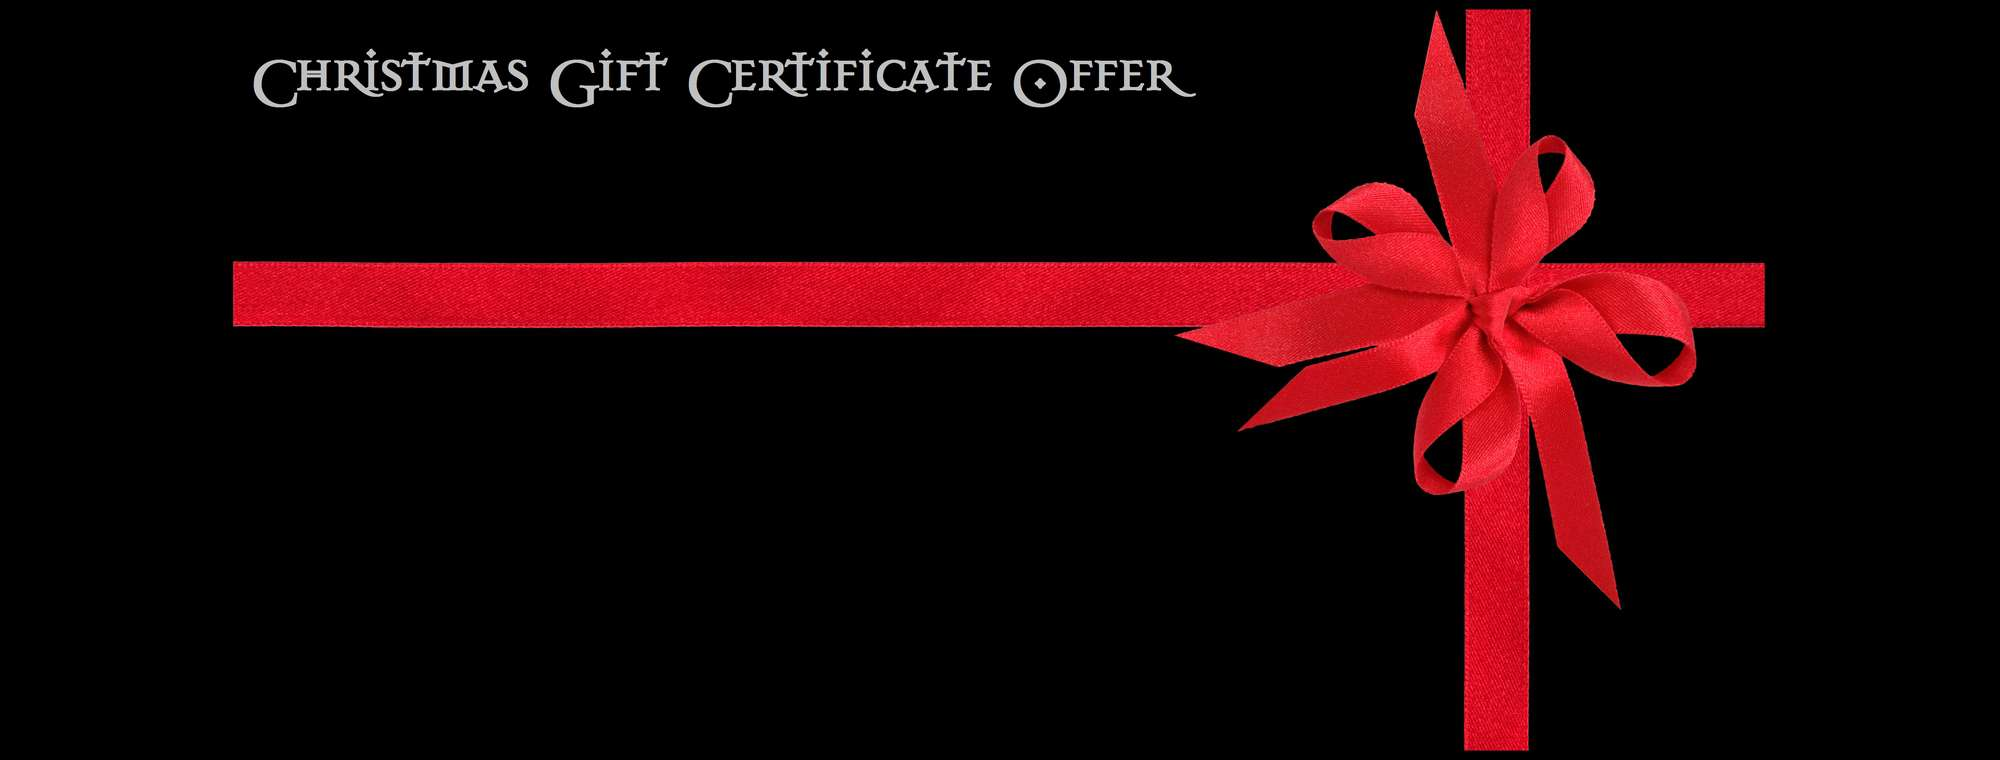 Christmas Gift Certificate Offer!